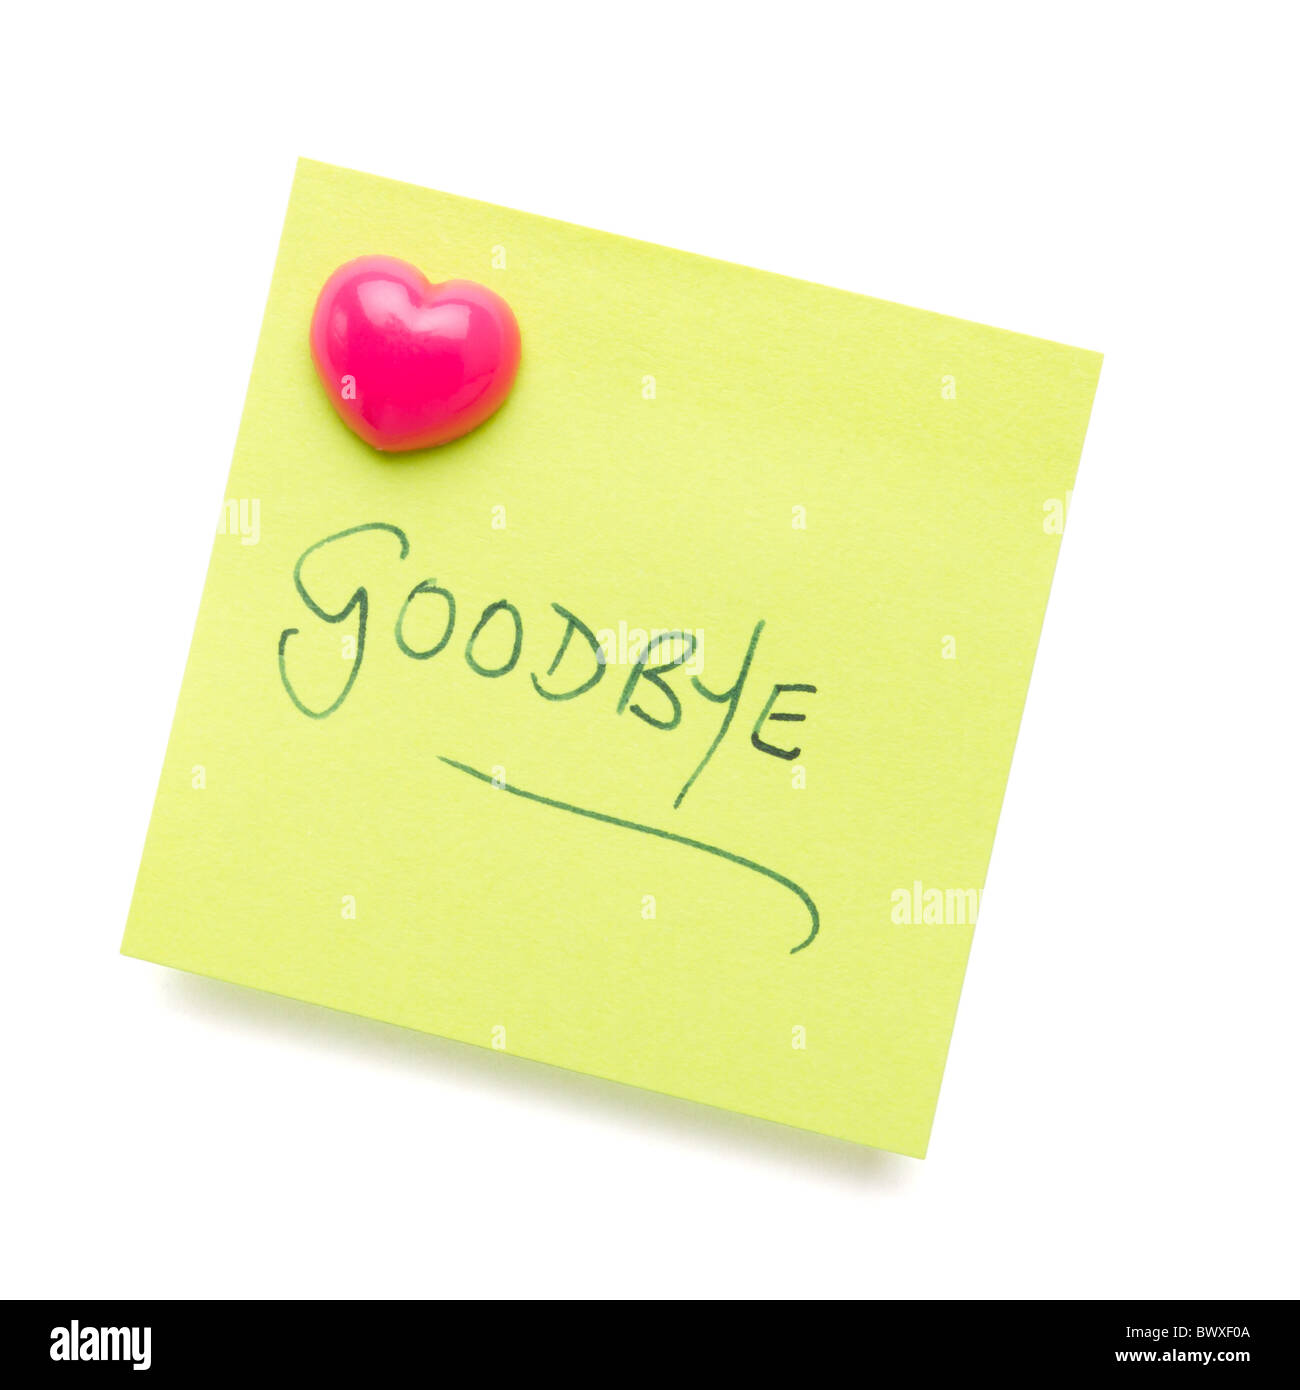 goodbye message on post it note isolated on white Photo – Goodbye Note